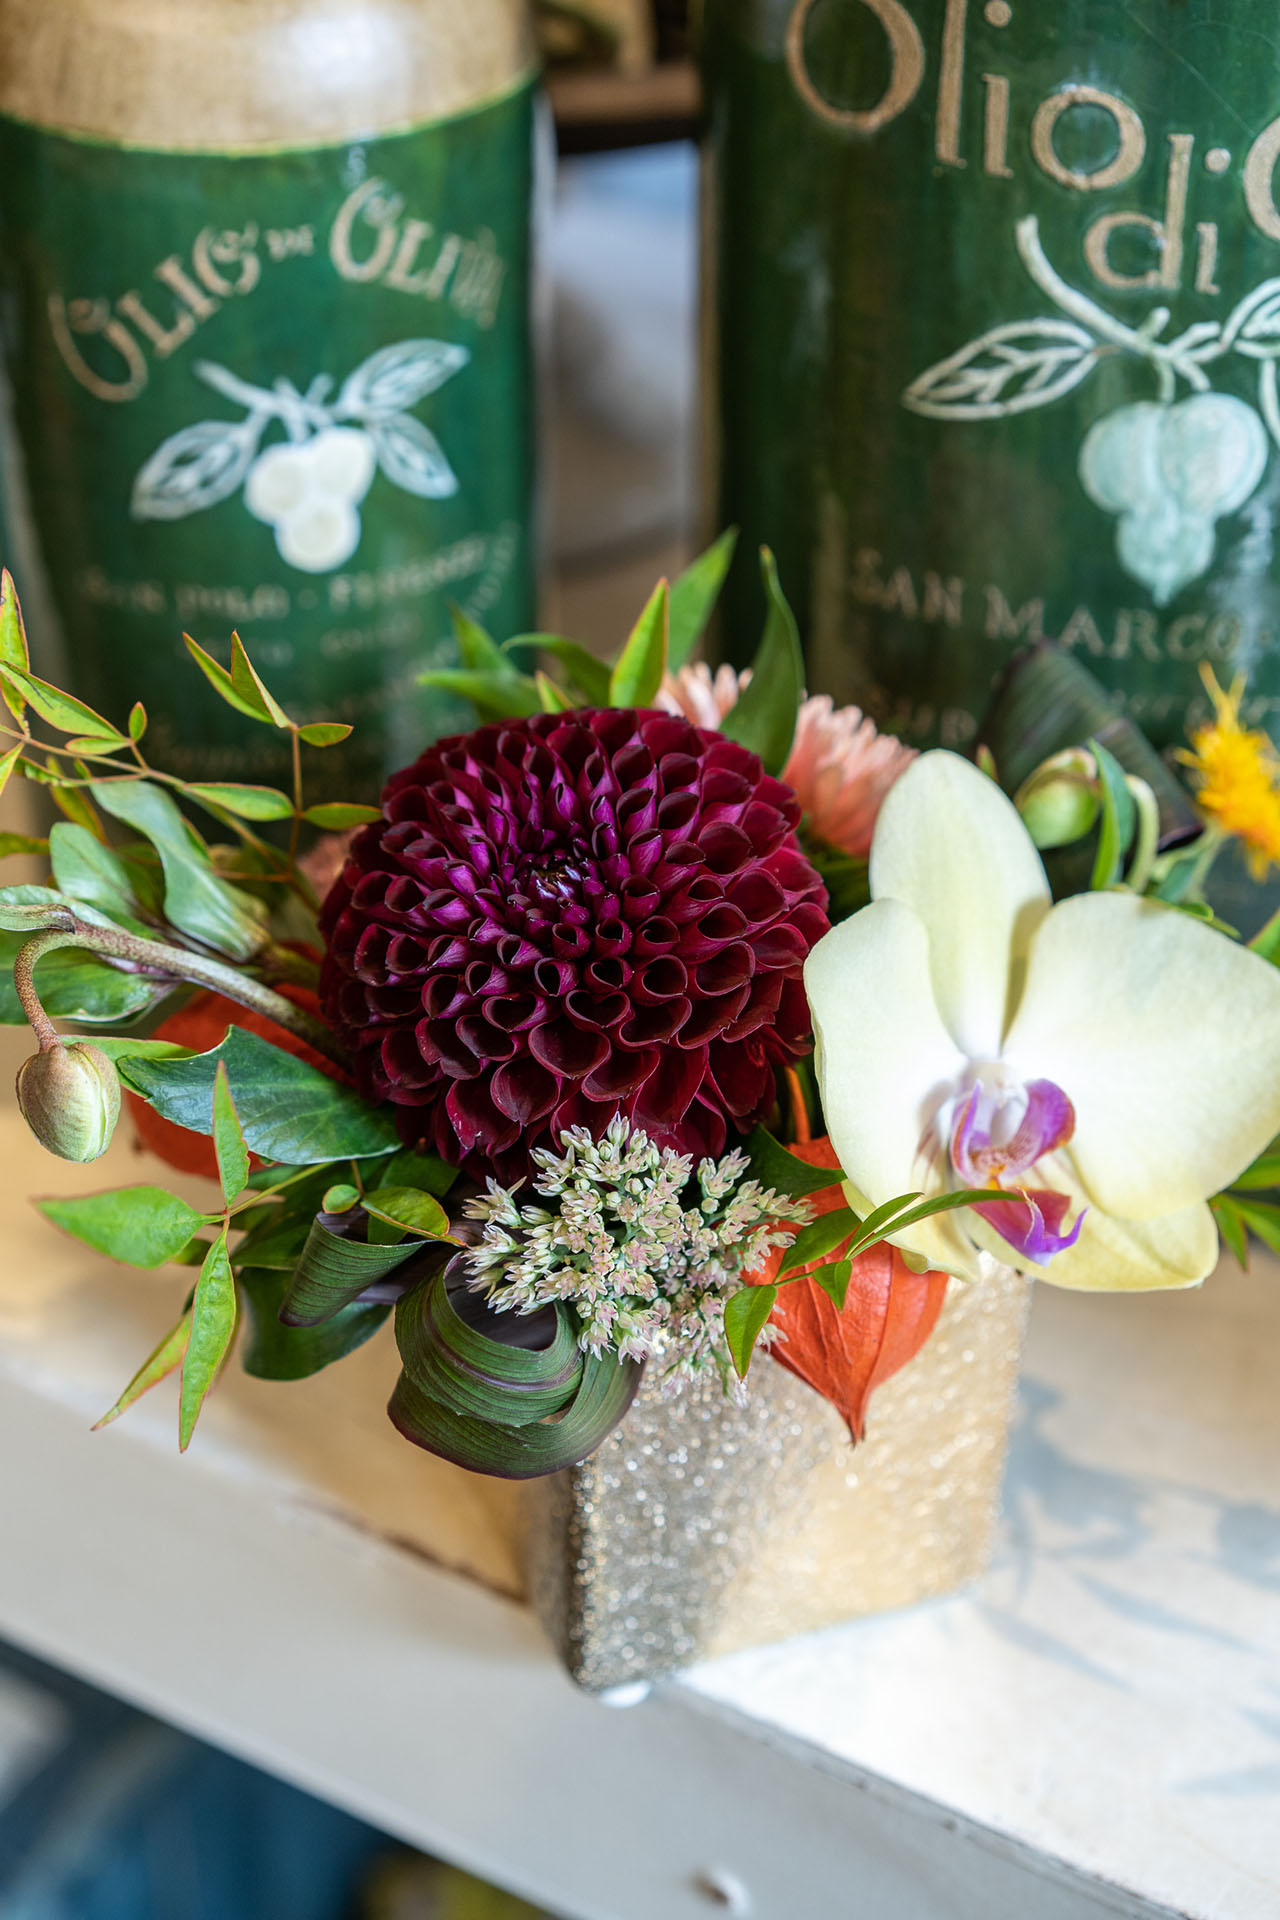 Miniature arrangements perfect for your dining or patio table.